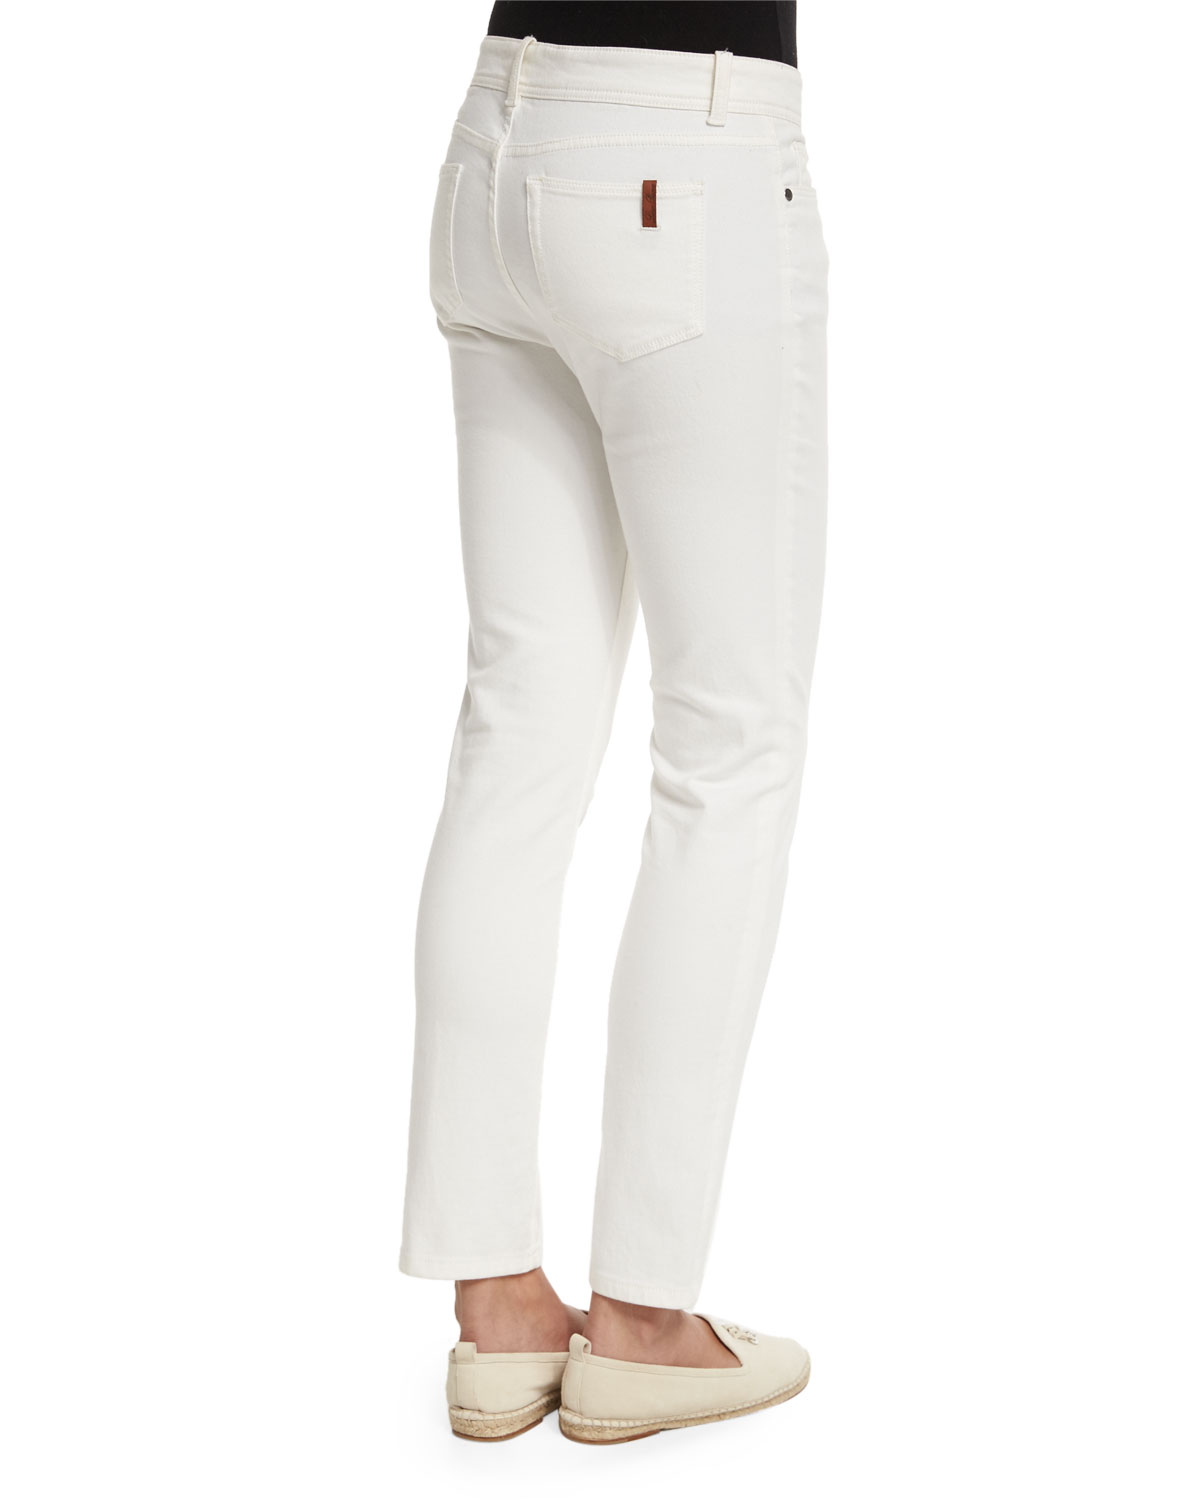 Mathias Slim-Leg Ankle Jeans Loro Piana Buy Cheap Best Store To Get Amazing Price Cheap Price Whole World Shipping With Paypal Xb0G2q